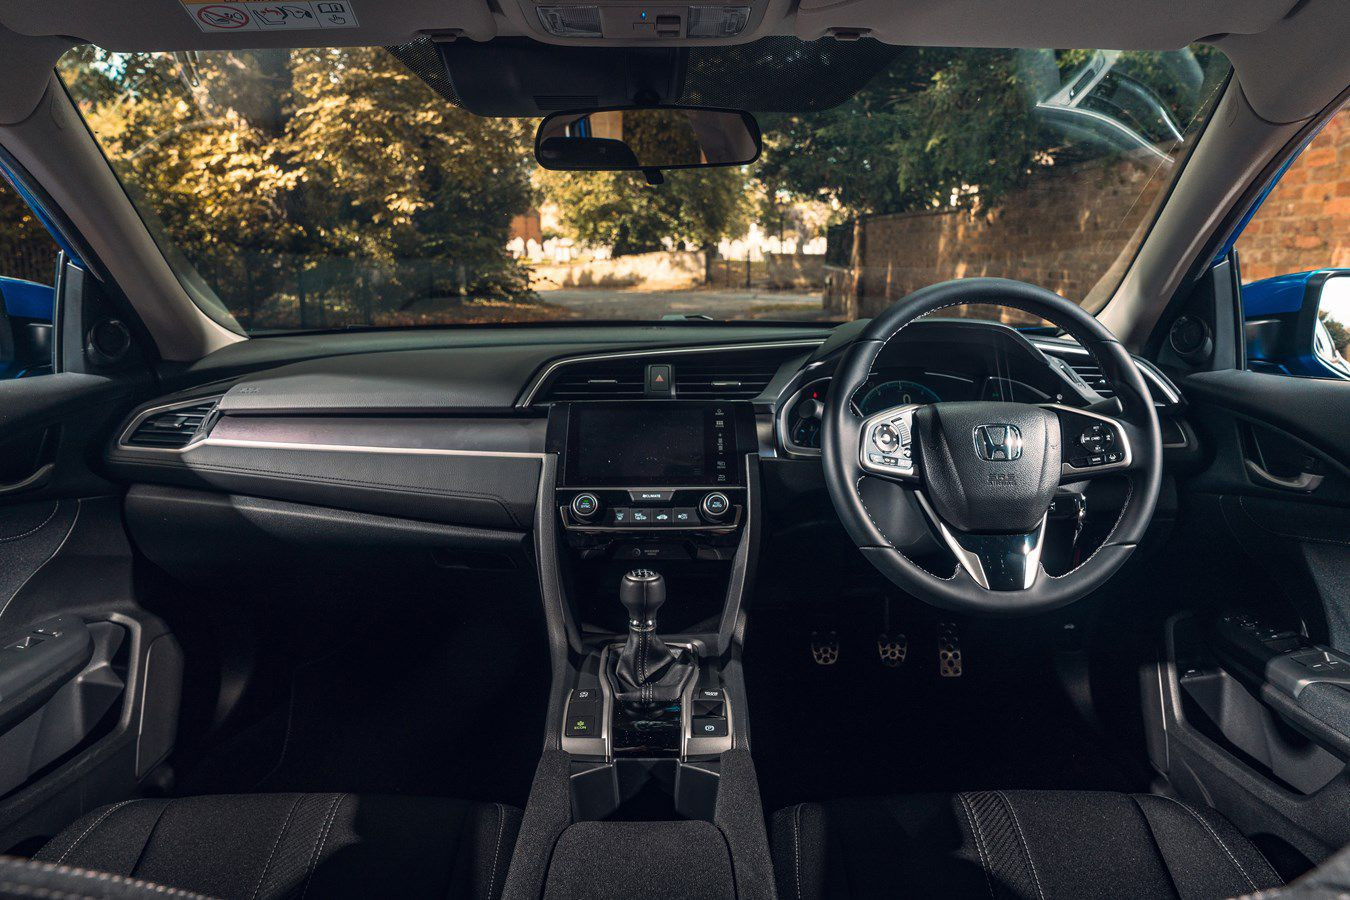 Interior of the Honda Civic